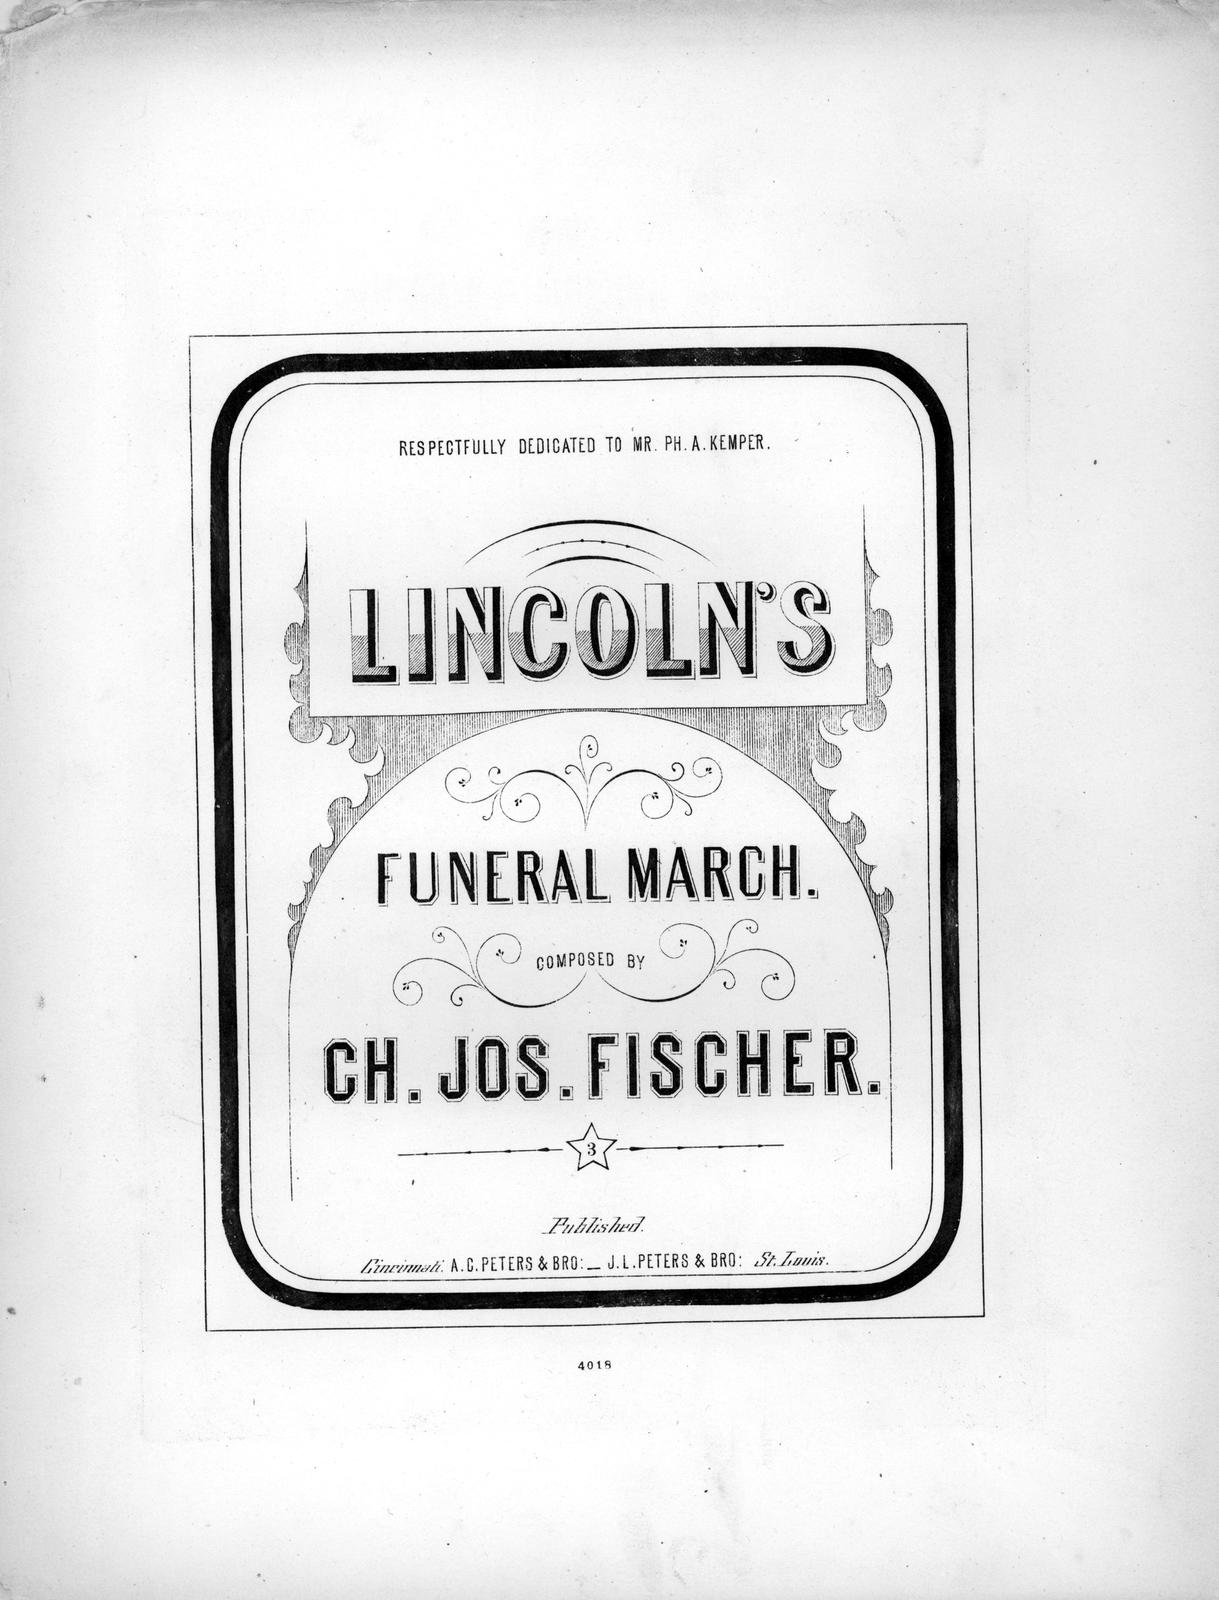 Lincoln's funeral march composed by Ch. Jos. Fischer.